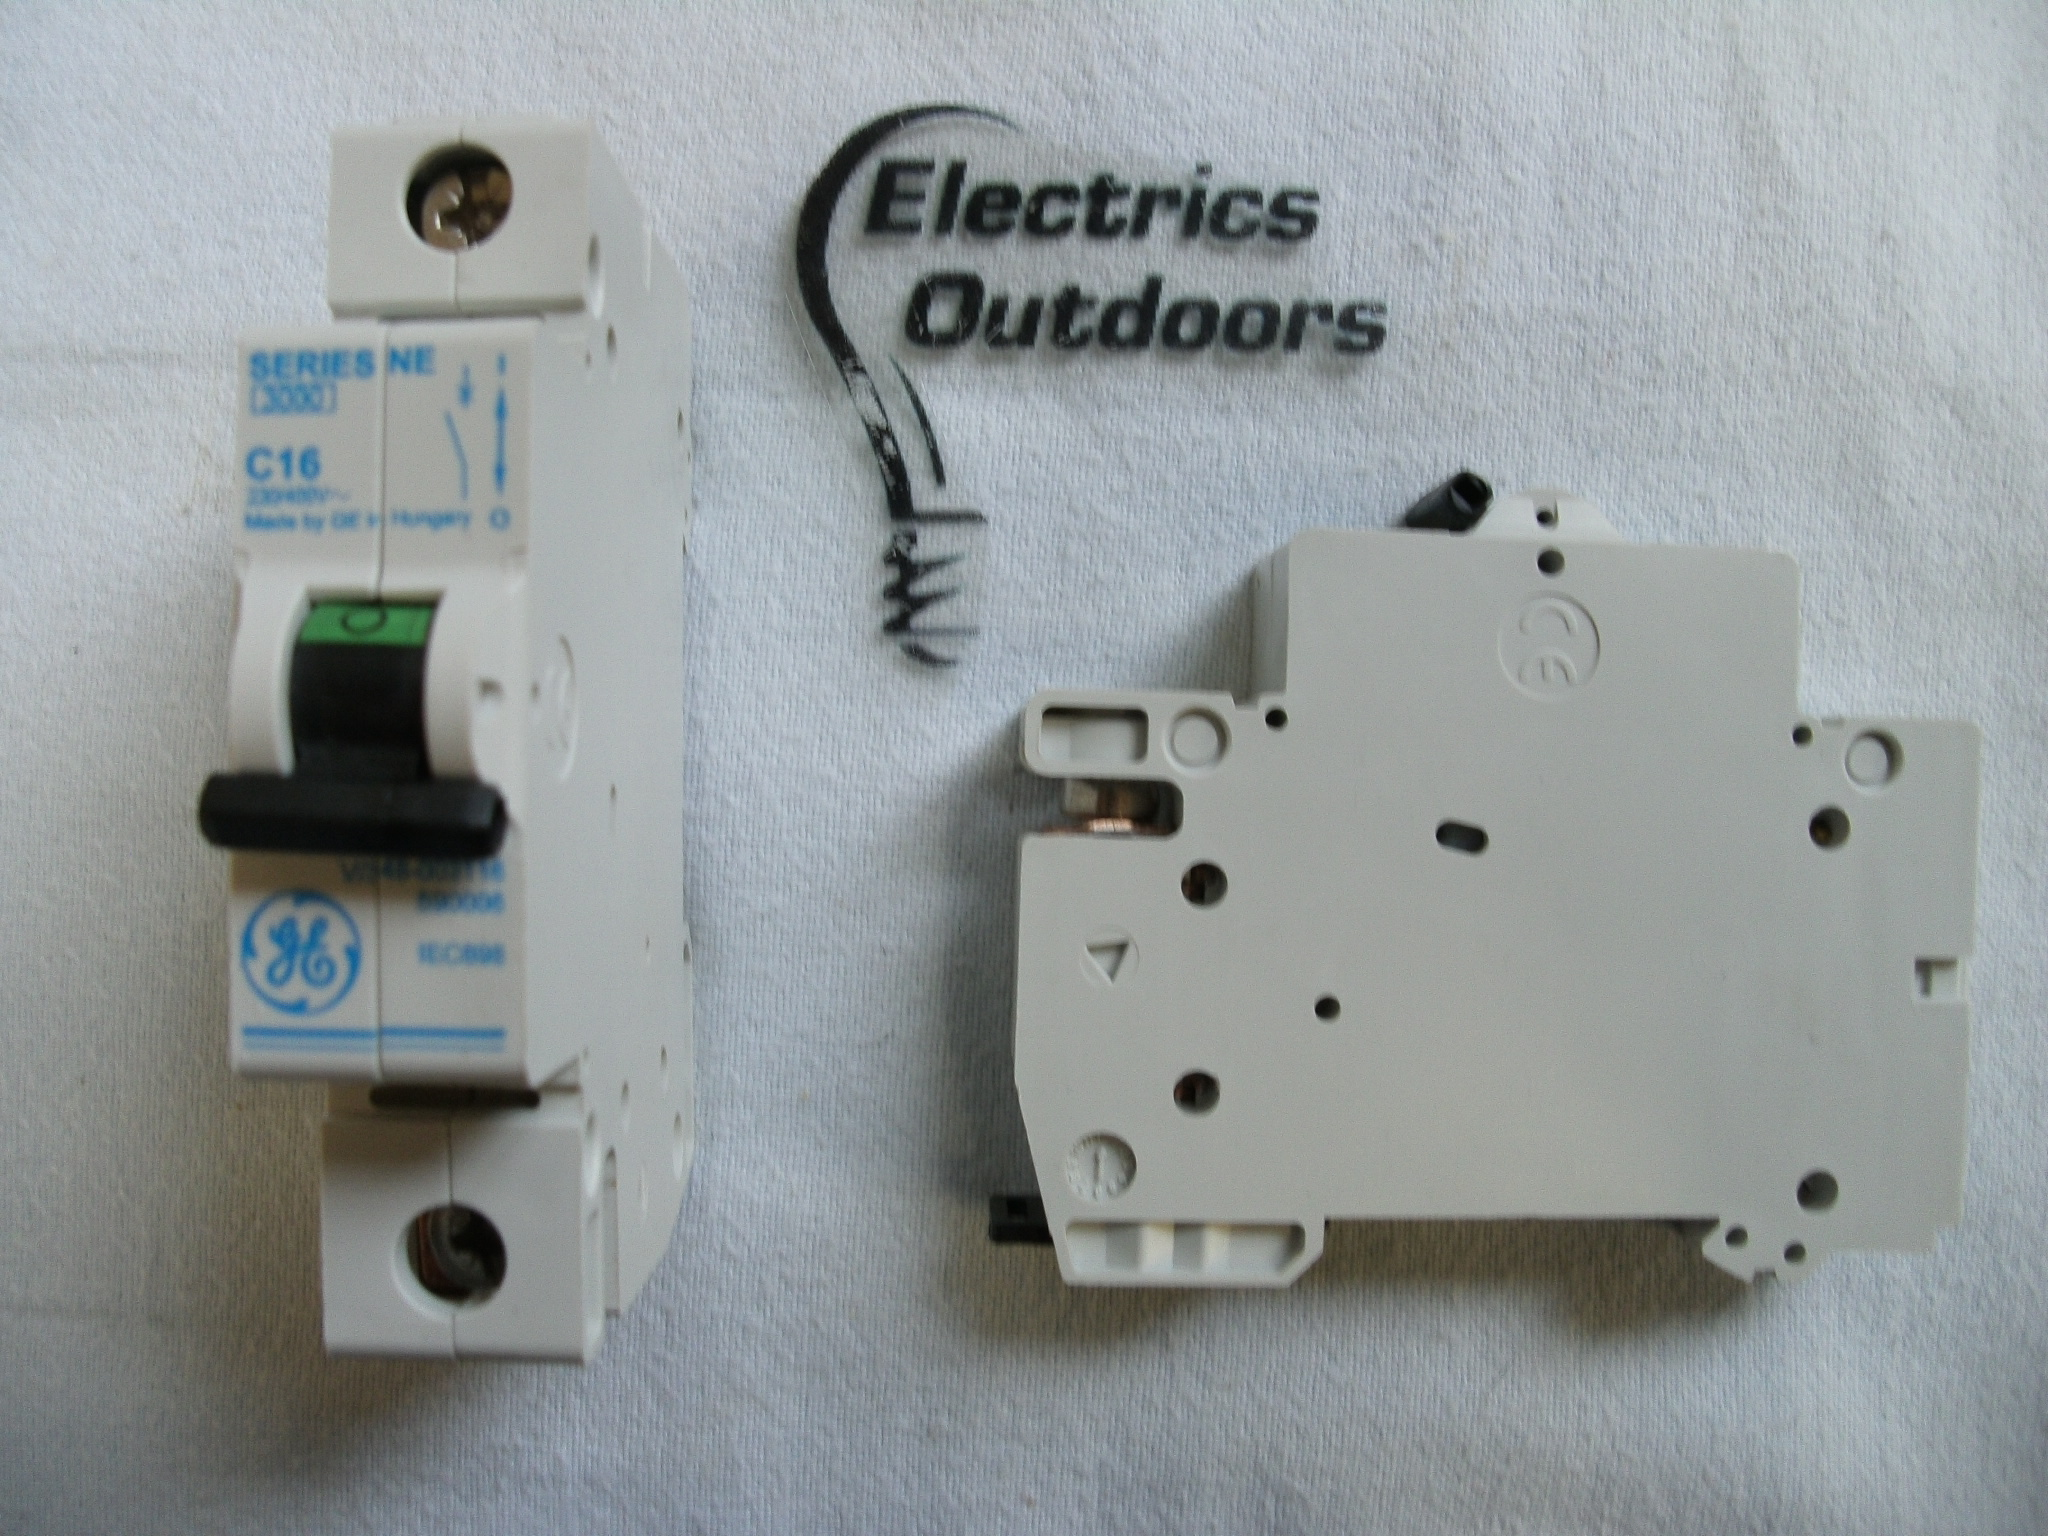 GENERAL ELECTRIC 16 AMP TYPE C 3 kA MCB BREAKER SERIES NE V/348/003116 590006